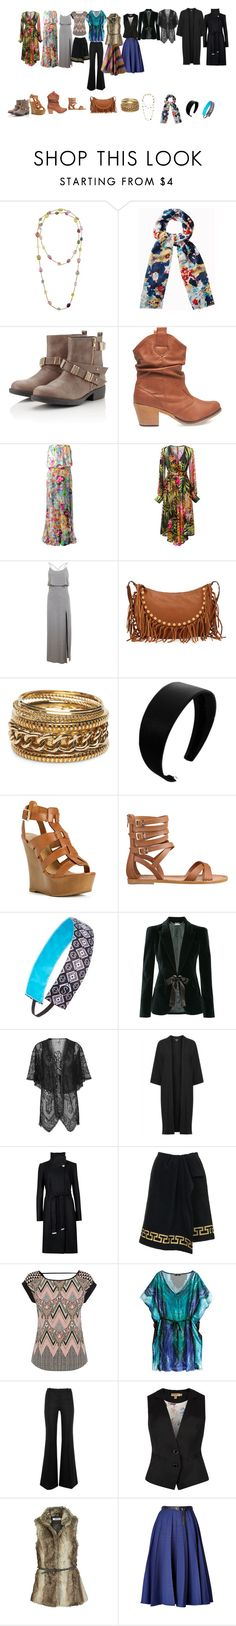 The Bohemian: Capsule Wardrobe Essentials by stylierge on Polyvore featuring Philipp Plein, Miss Selfridge, Warehouse, Topshop, Ted Baker, Alexander McQueen, ONLY, Bouchra Jarrar, Vionnet and H&M